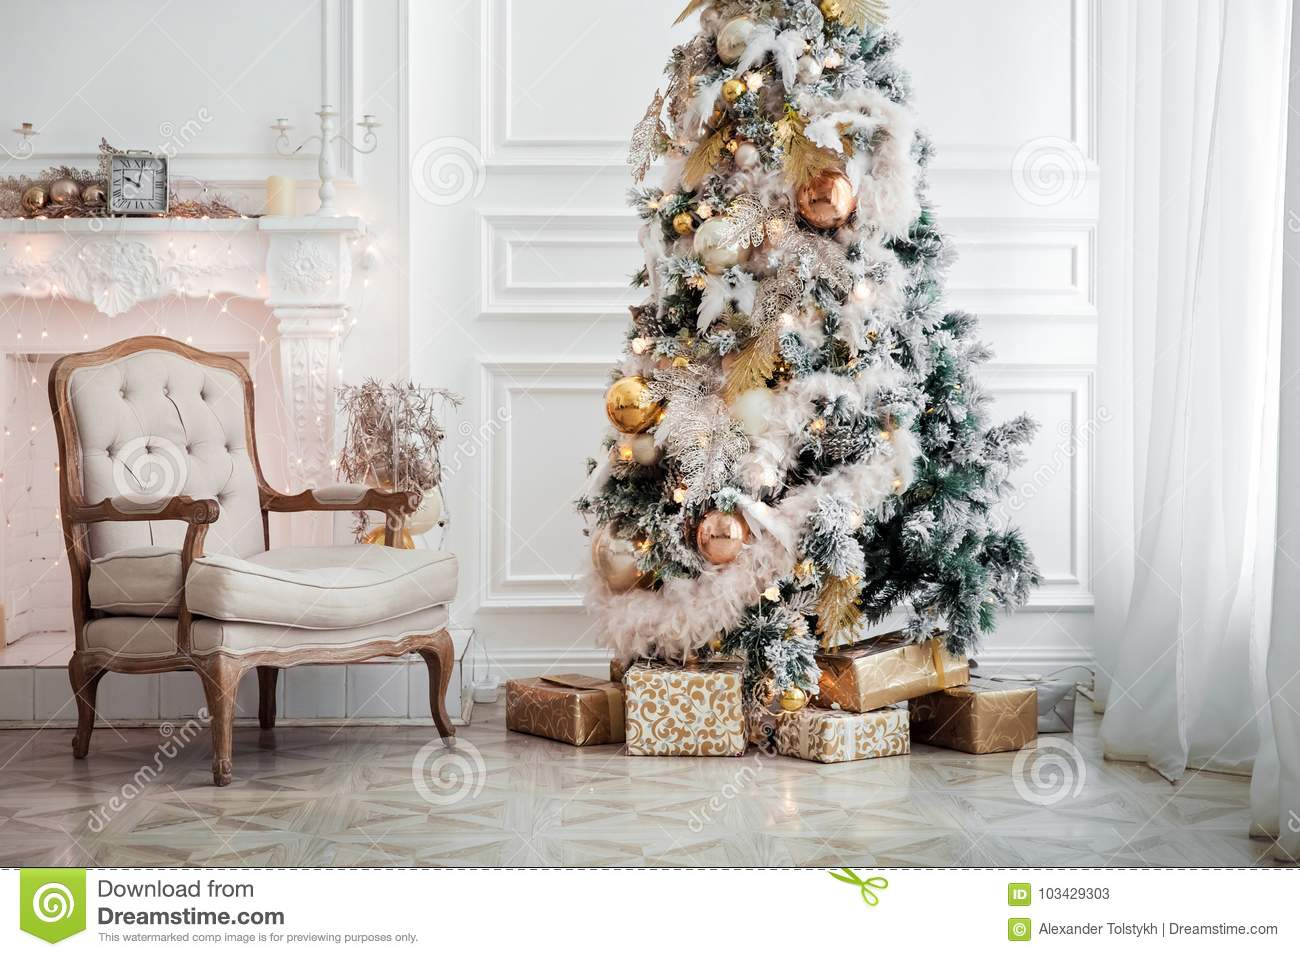 classic white christmas interior with new year tree decorated fireplace with grey chair clocks on the wall and presents under the tree